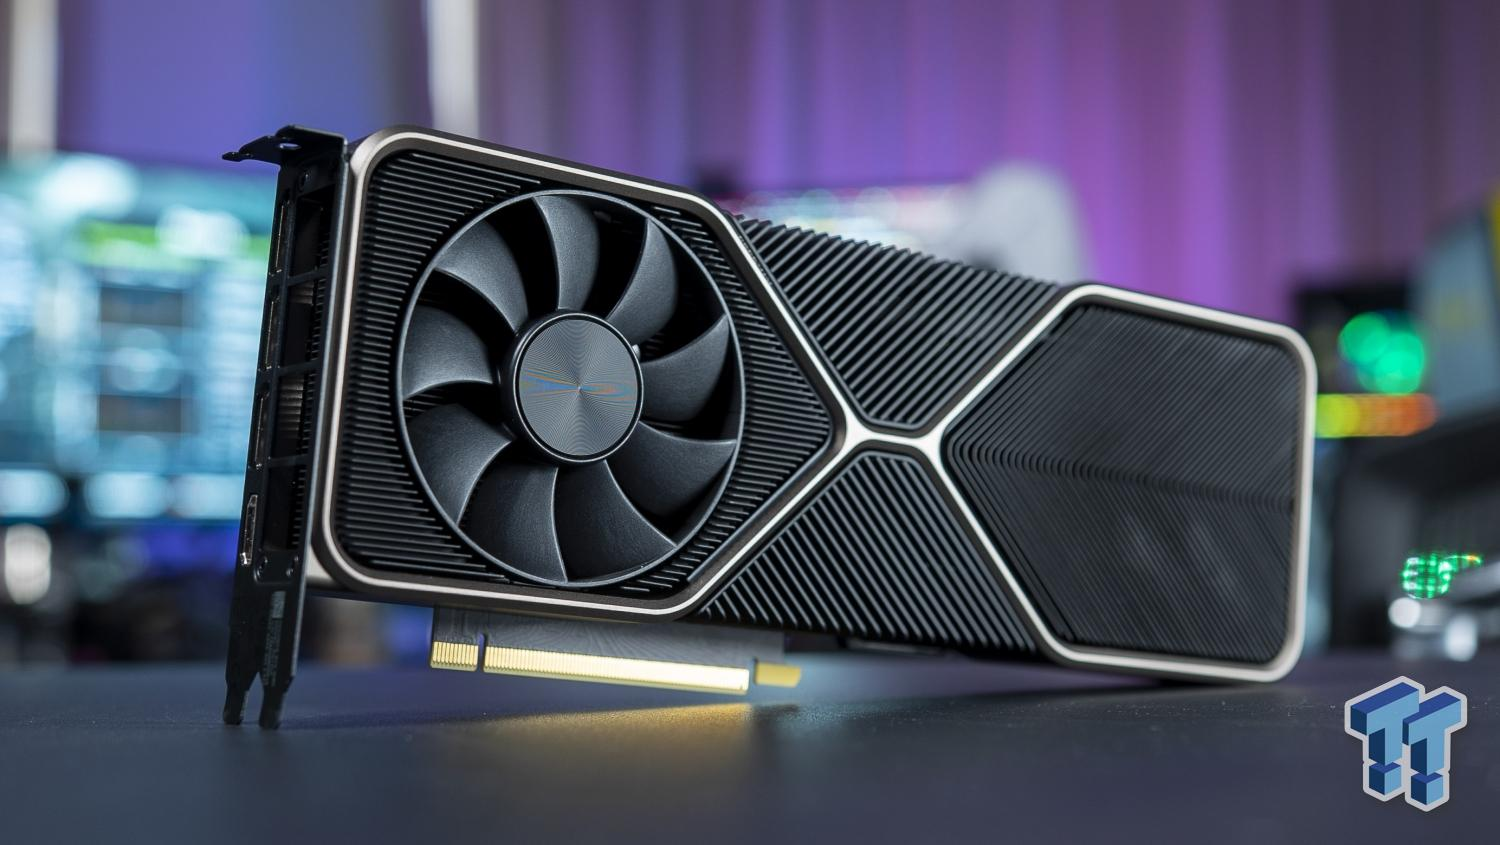 NVIDIA GeForce RTX 3080 Founders Edition Review: The Superman of GPUs